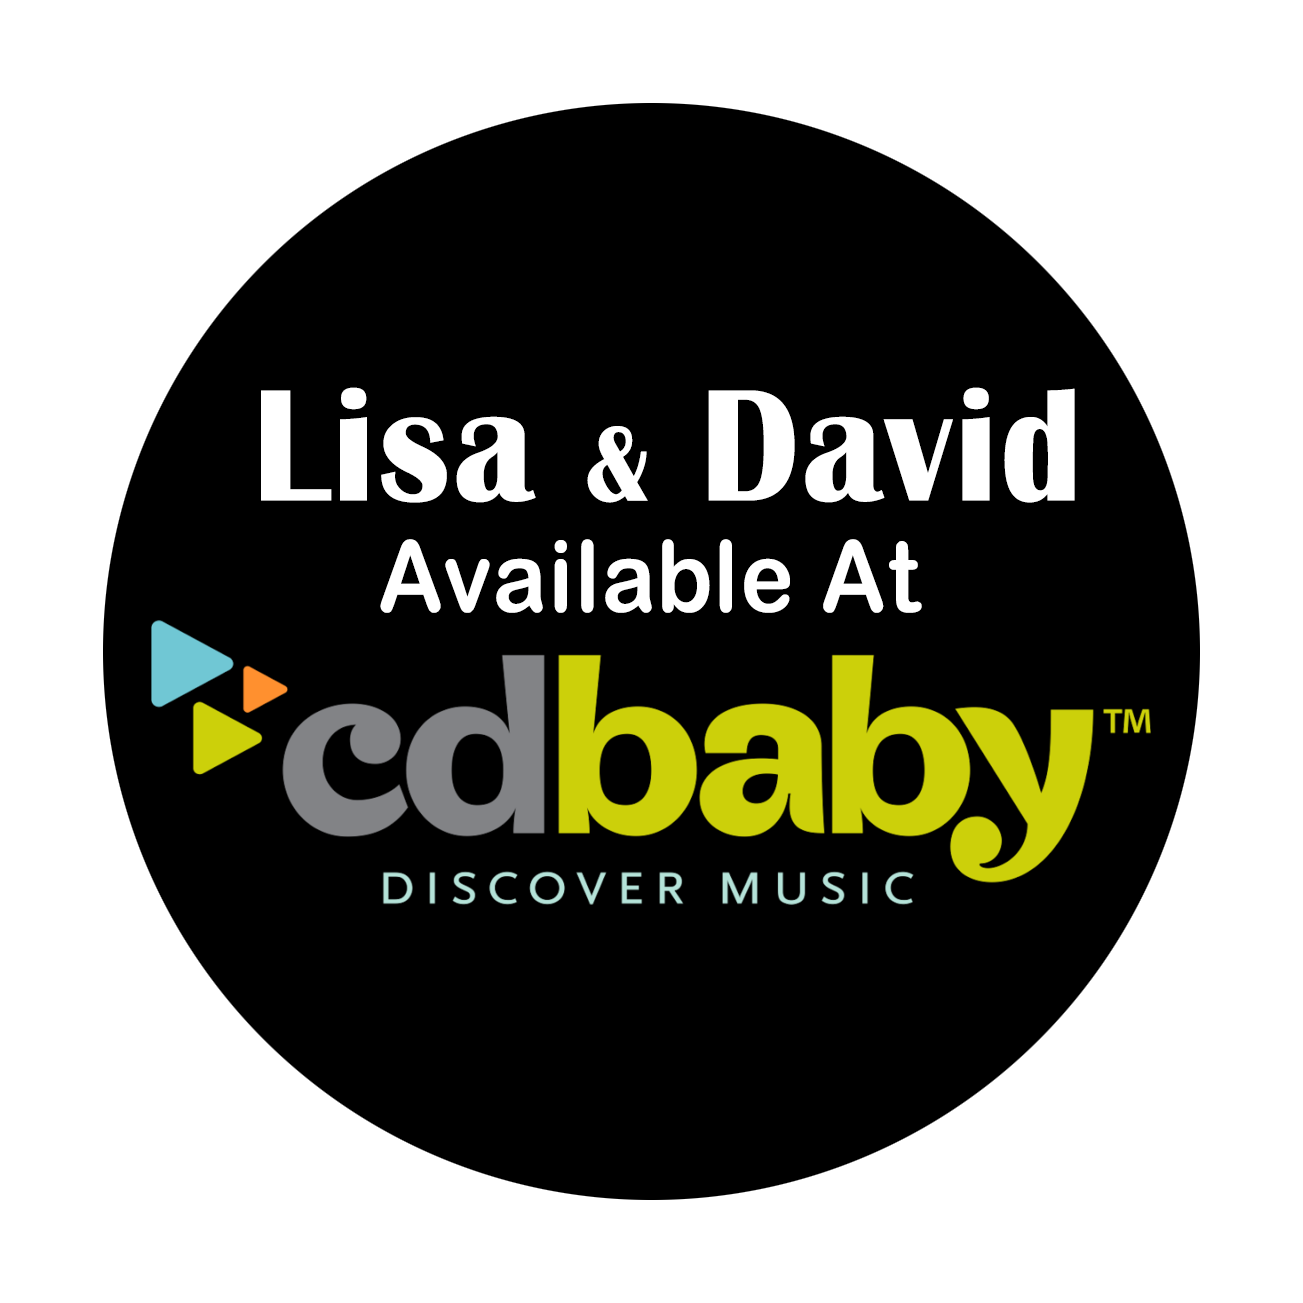 Lisa & David music available on CD Baby!